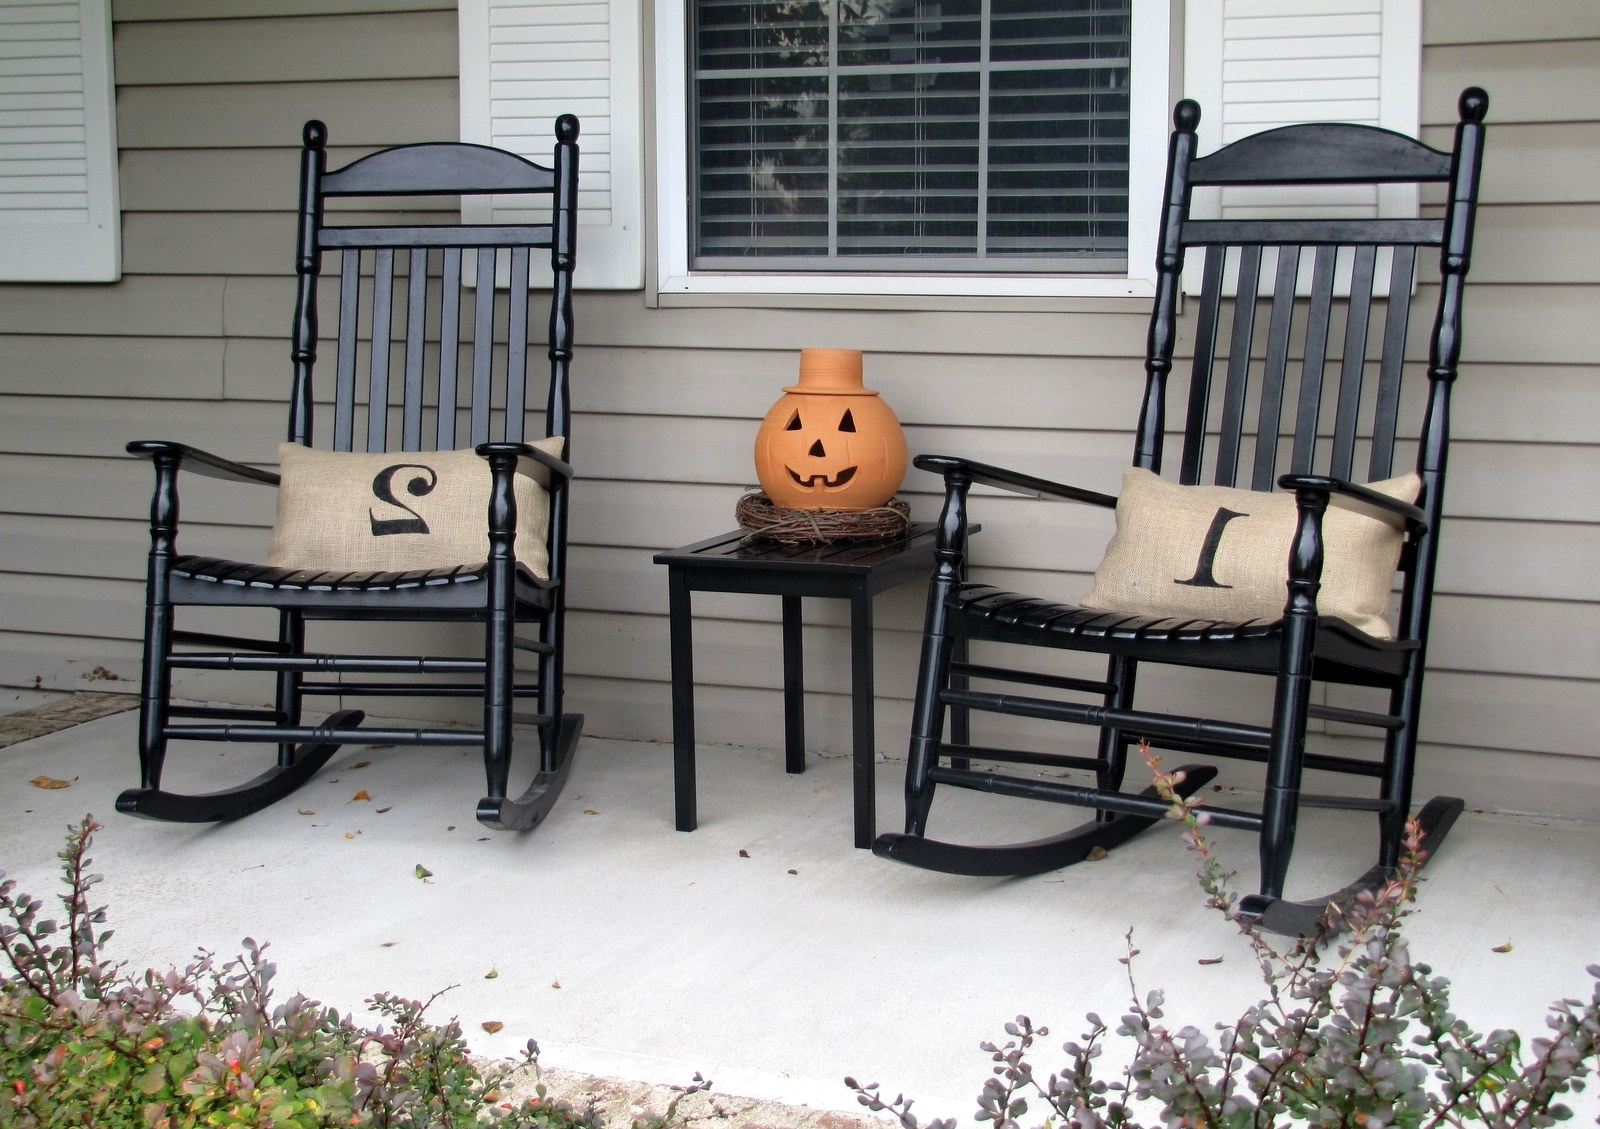 Rocking Chairs For Front Porch Throughout Most Popular All Weather Rocking Chair Into The Glass Outdoor Wood Gray Black (View 11 of 15)